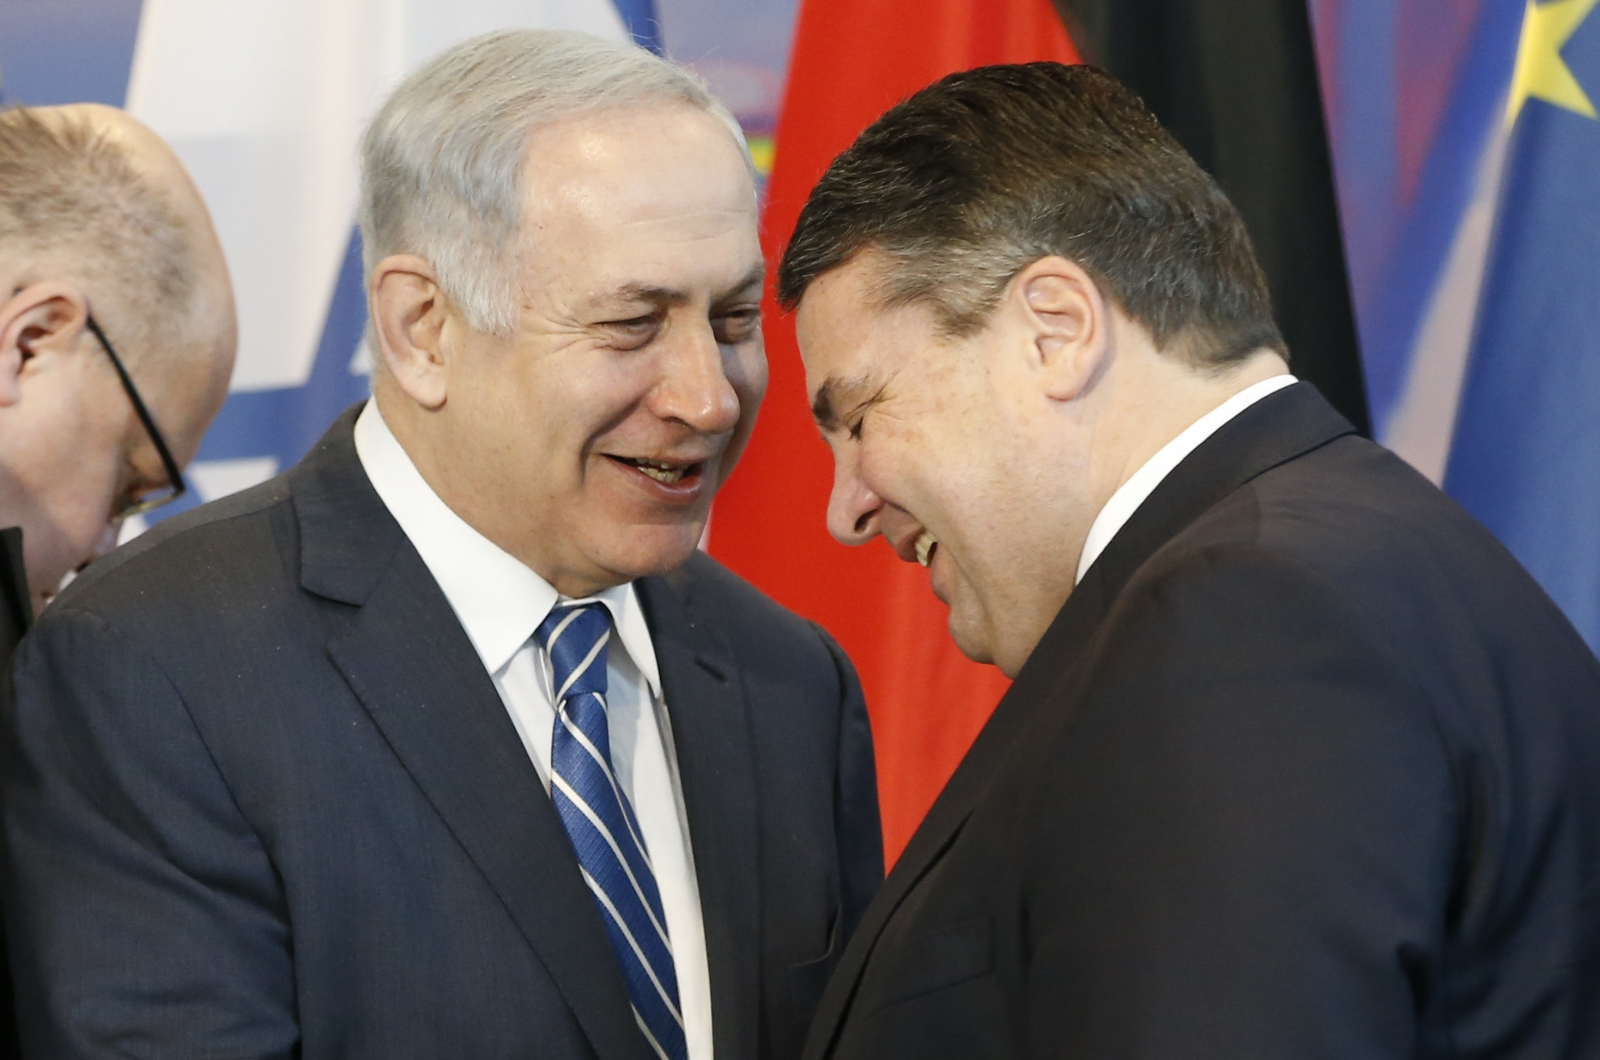 Netanyahu nixes meeting with German FM over visit with NGOs